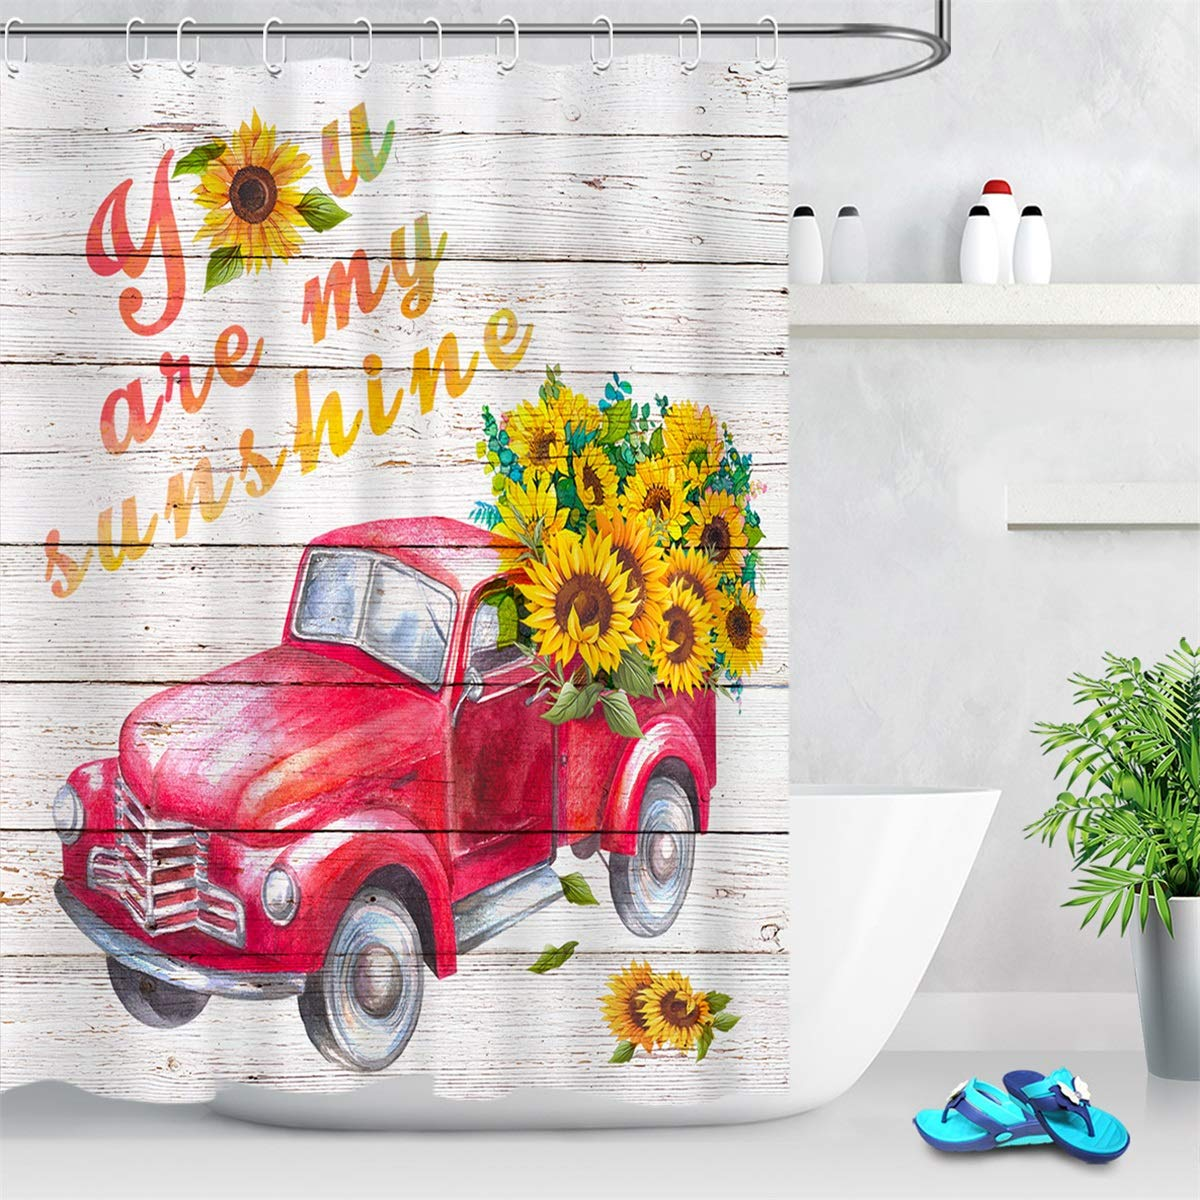 LB Bright Sunflower Shower Curtain Set Red Truck Pulling Yellow Flowers Farm Shower Curtain with 'You are My Sunshine' on Rustic Wood Shower Curtains for Girls Bathroom Decor 72x72 Polyester Fabric